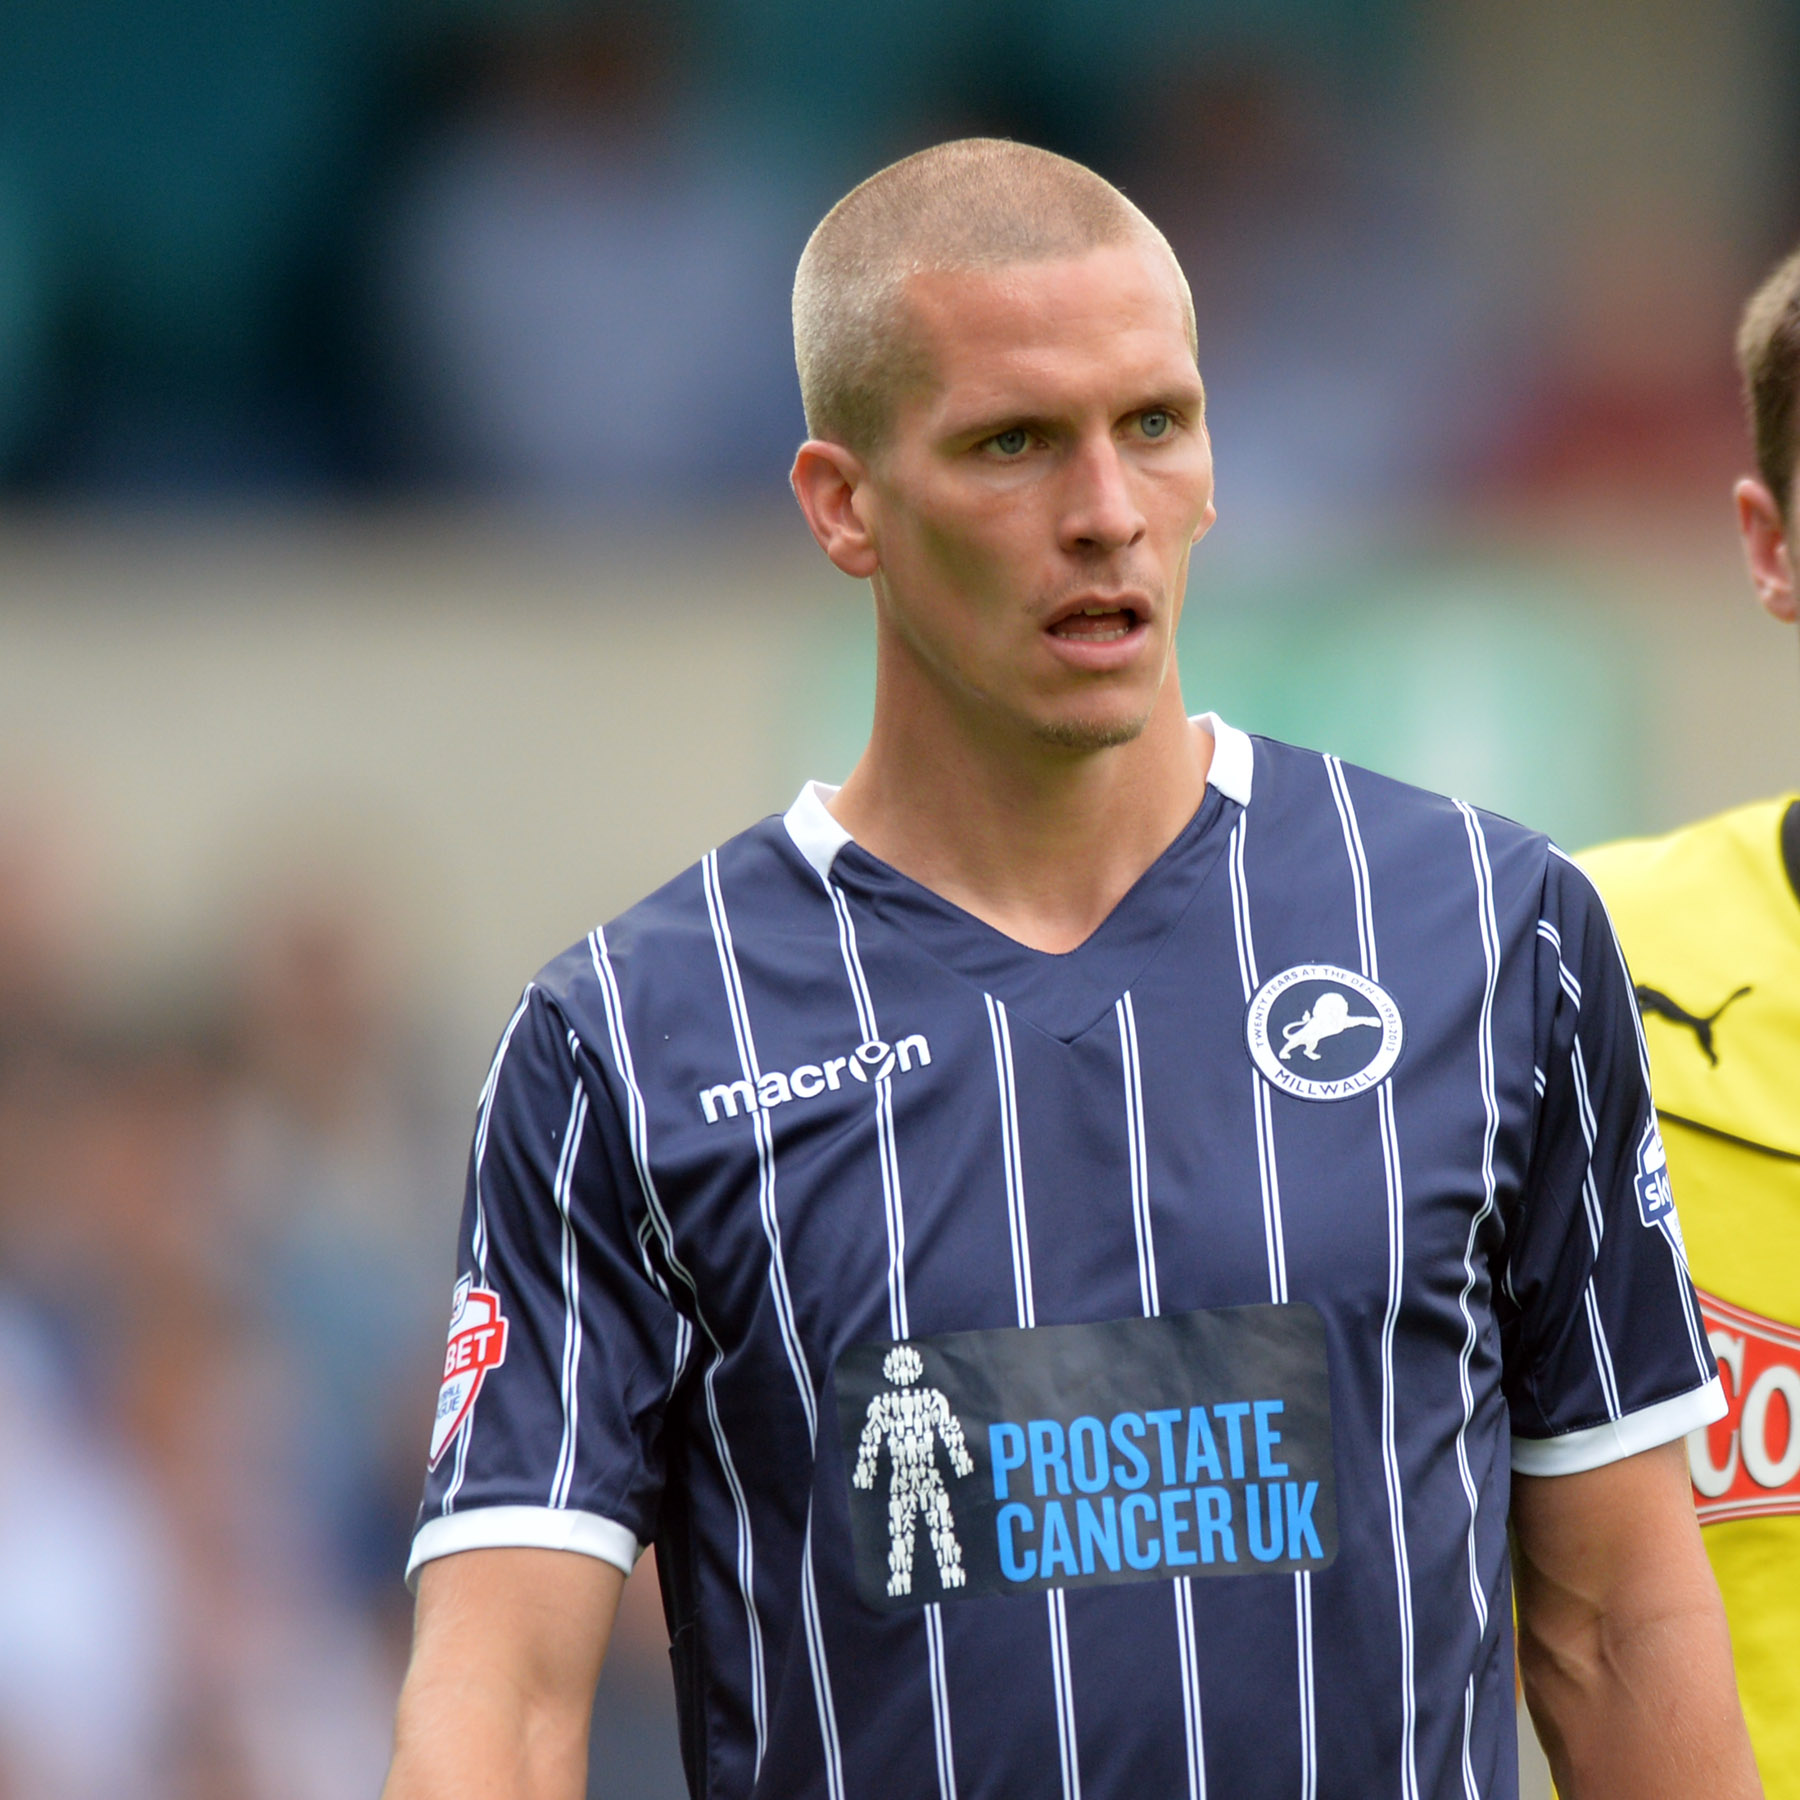 Steve Morison (above) missed a penalty and suffered a neck injury. Pictuire by Keith Gillard.